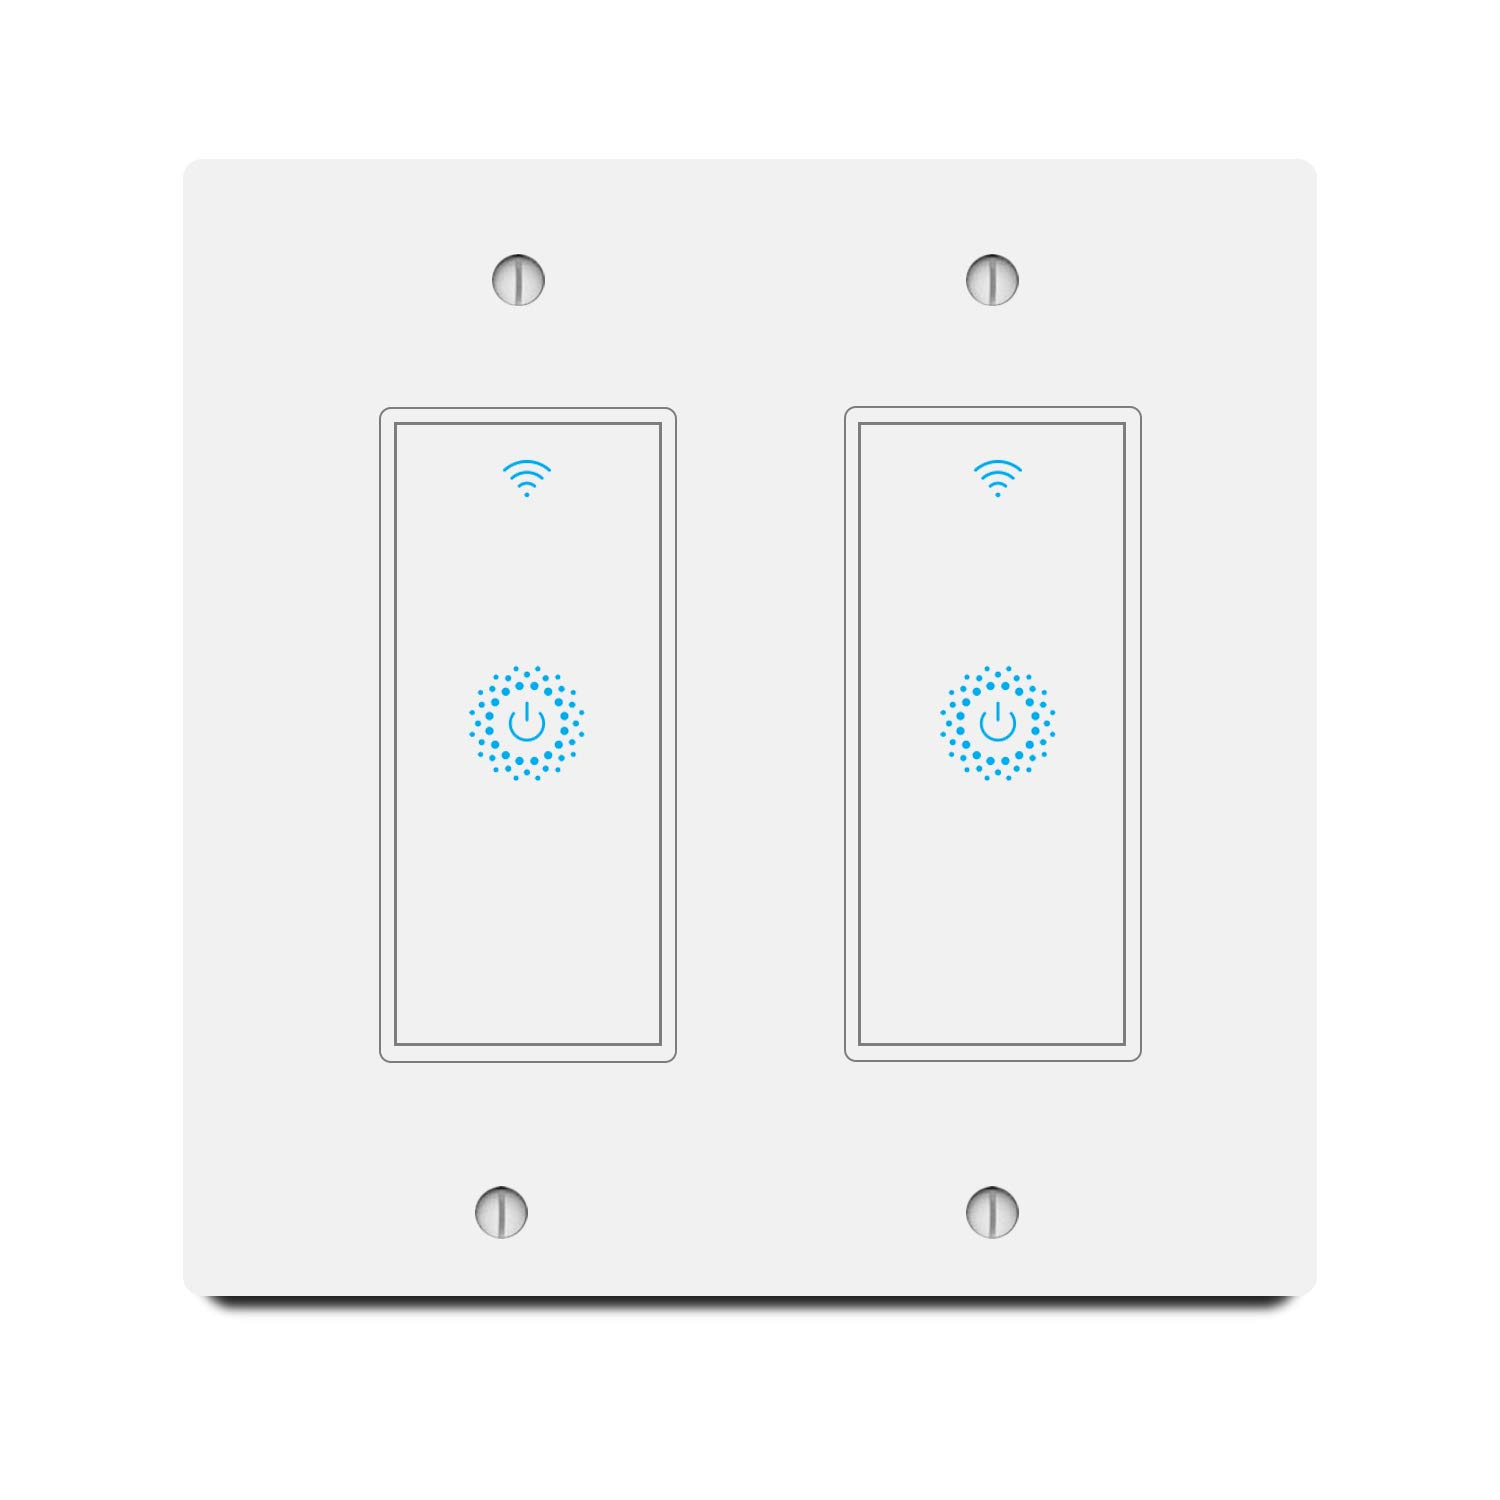 Smart Light OFFer SwitchAlexa Double Outlet SALE W SwitchWIFI Switch